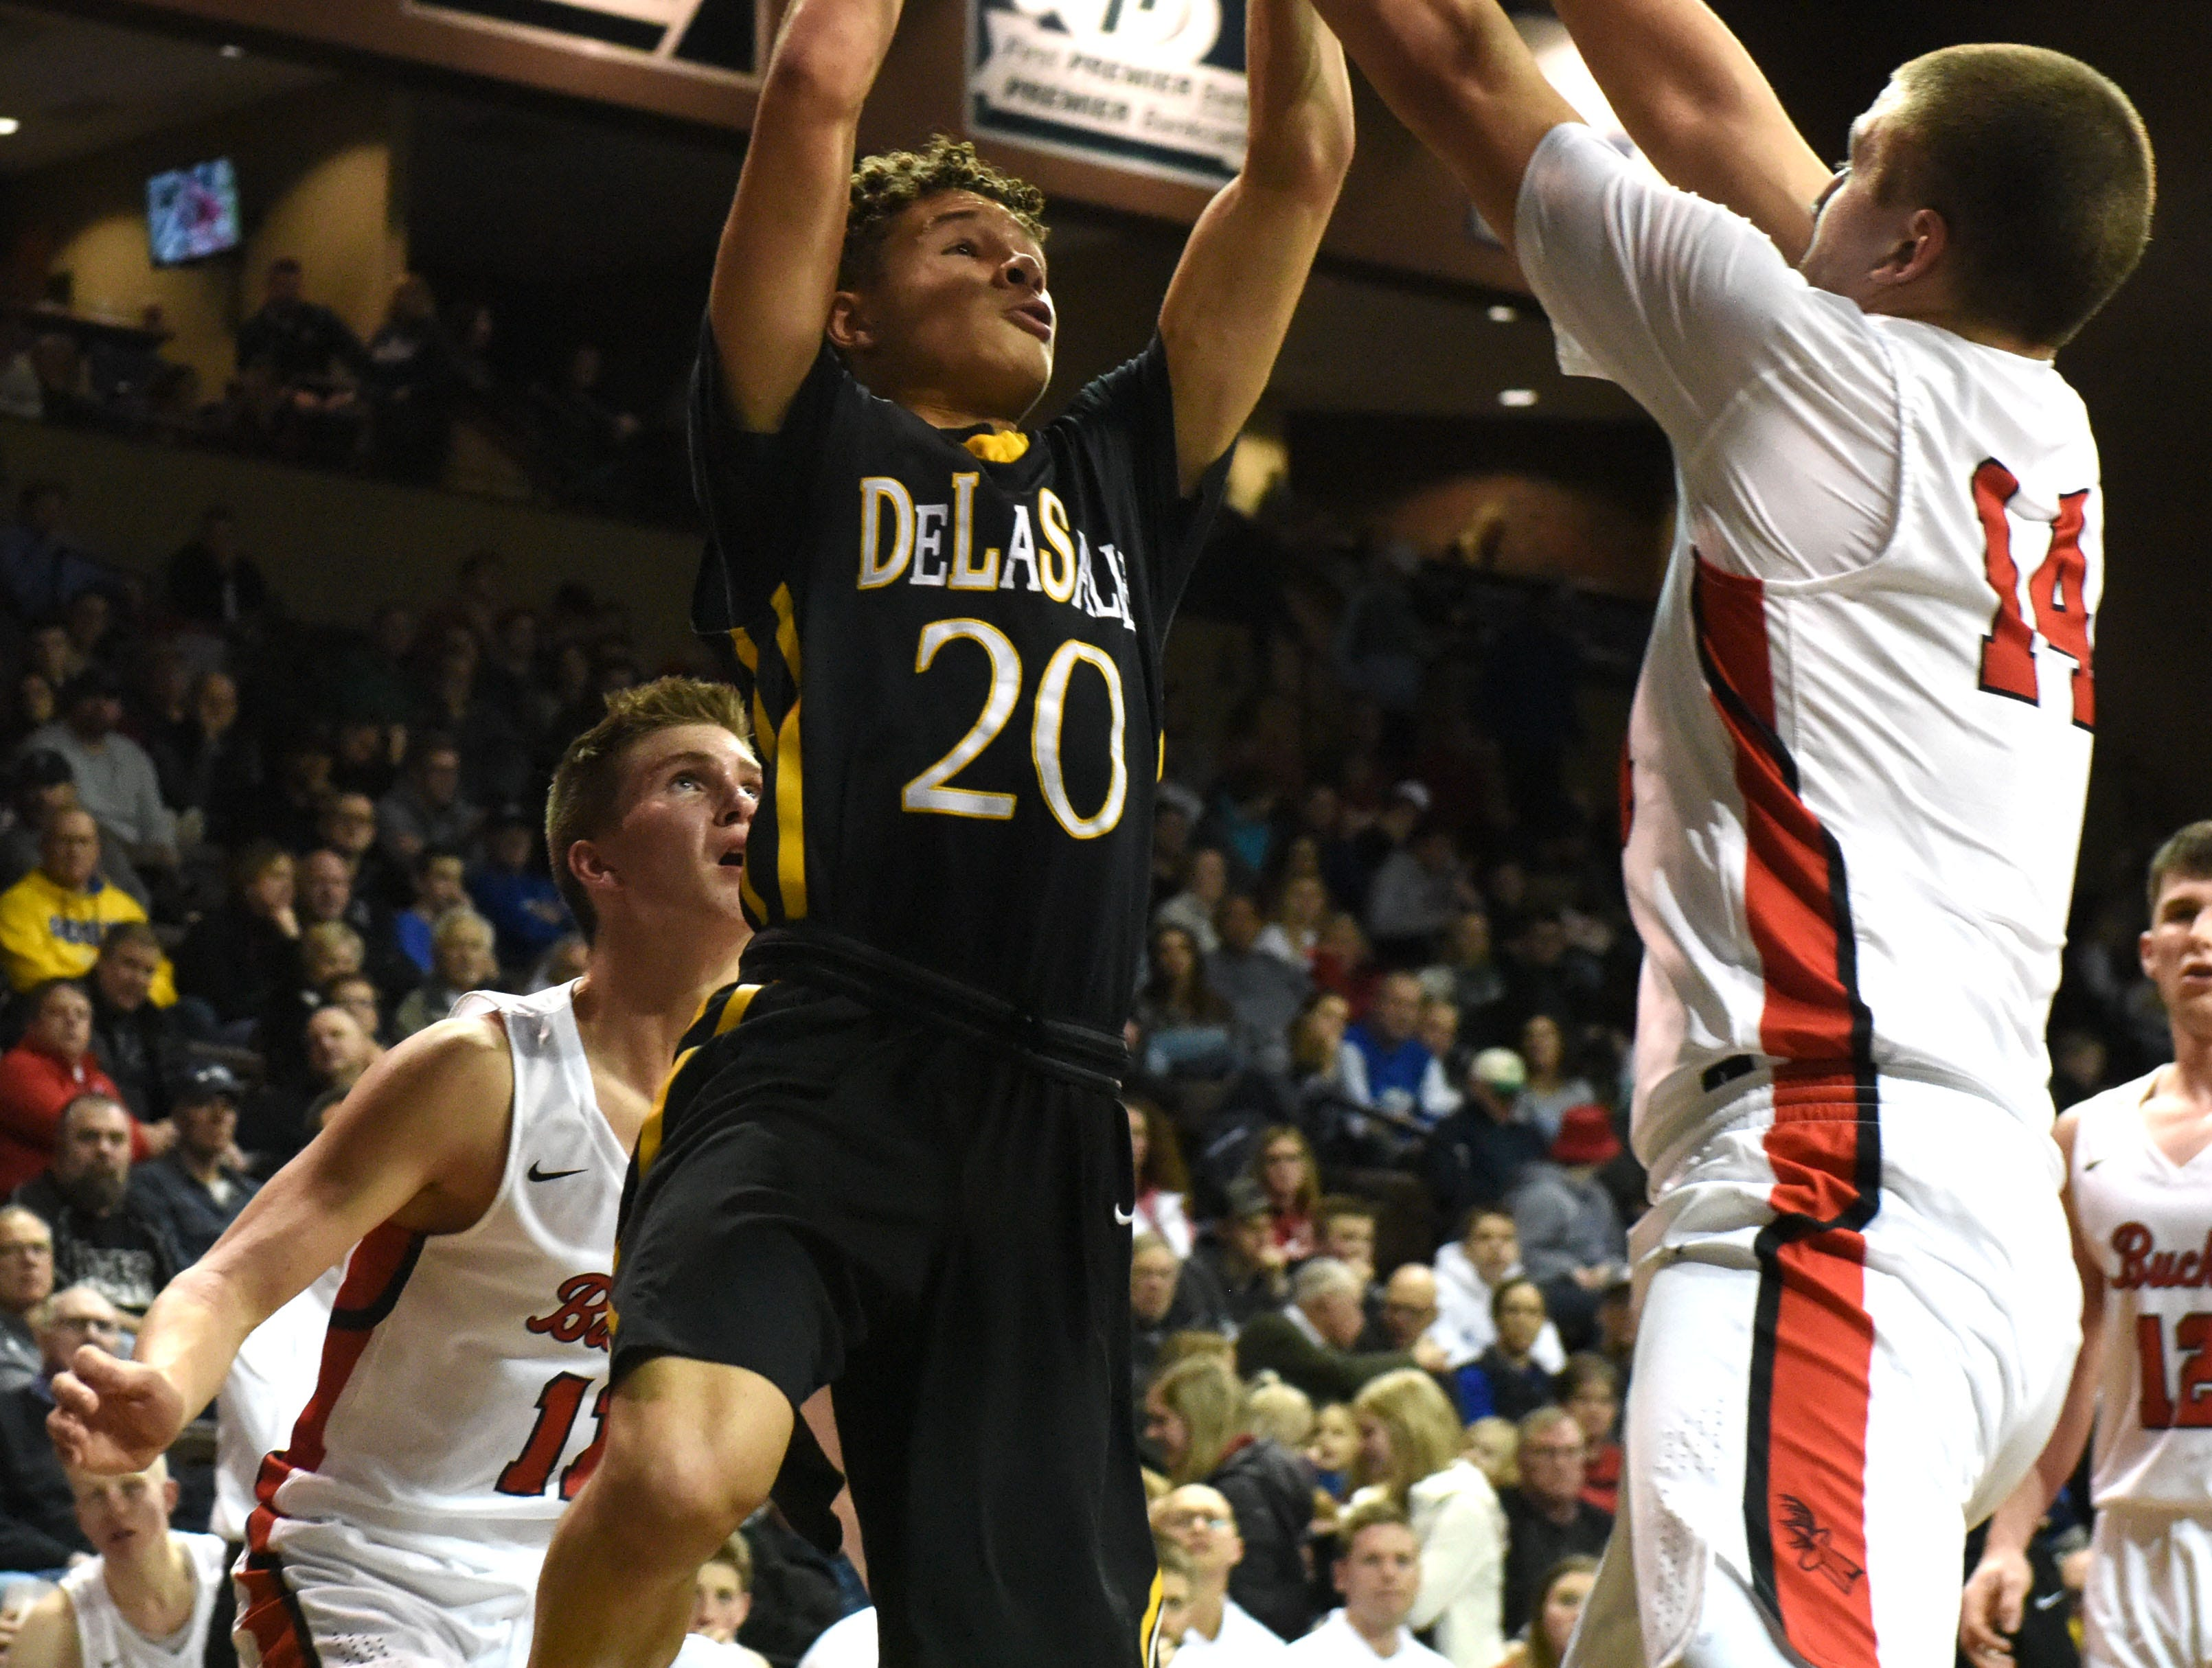 DeLaSalle's Andrew Irvin (20) shoots the ball during a game against Yankton at the Hoop City Classic at the Sanford Pentagon in Sioux Falls, S.D., Saturday, Dec. 29, 2018.